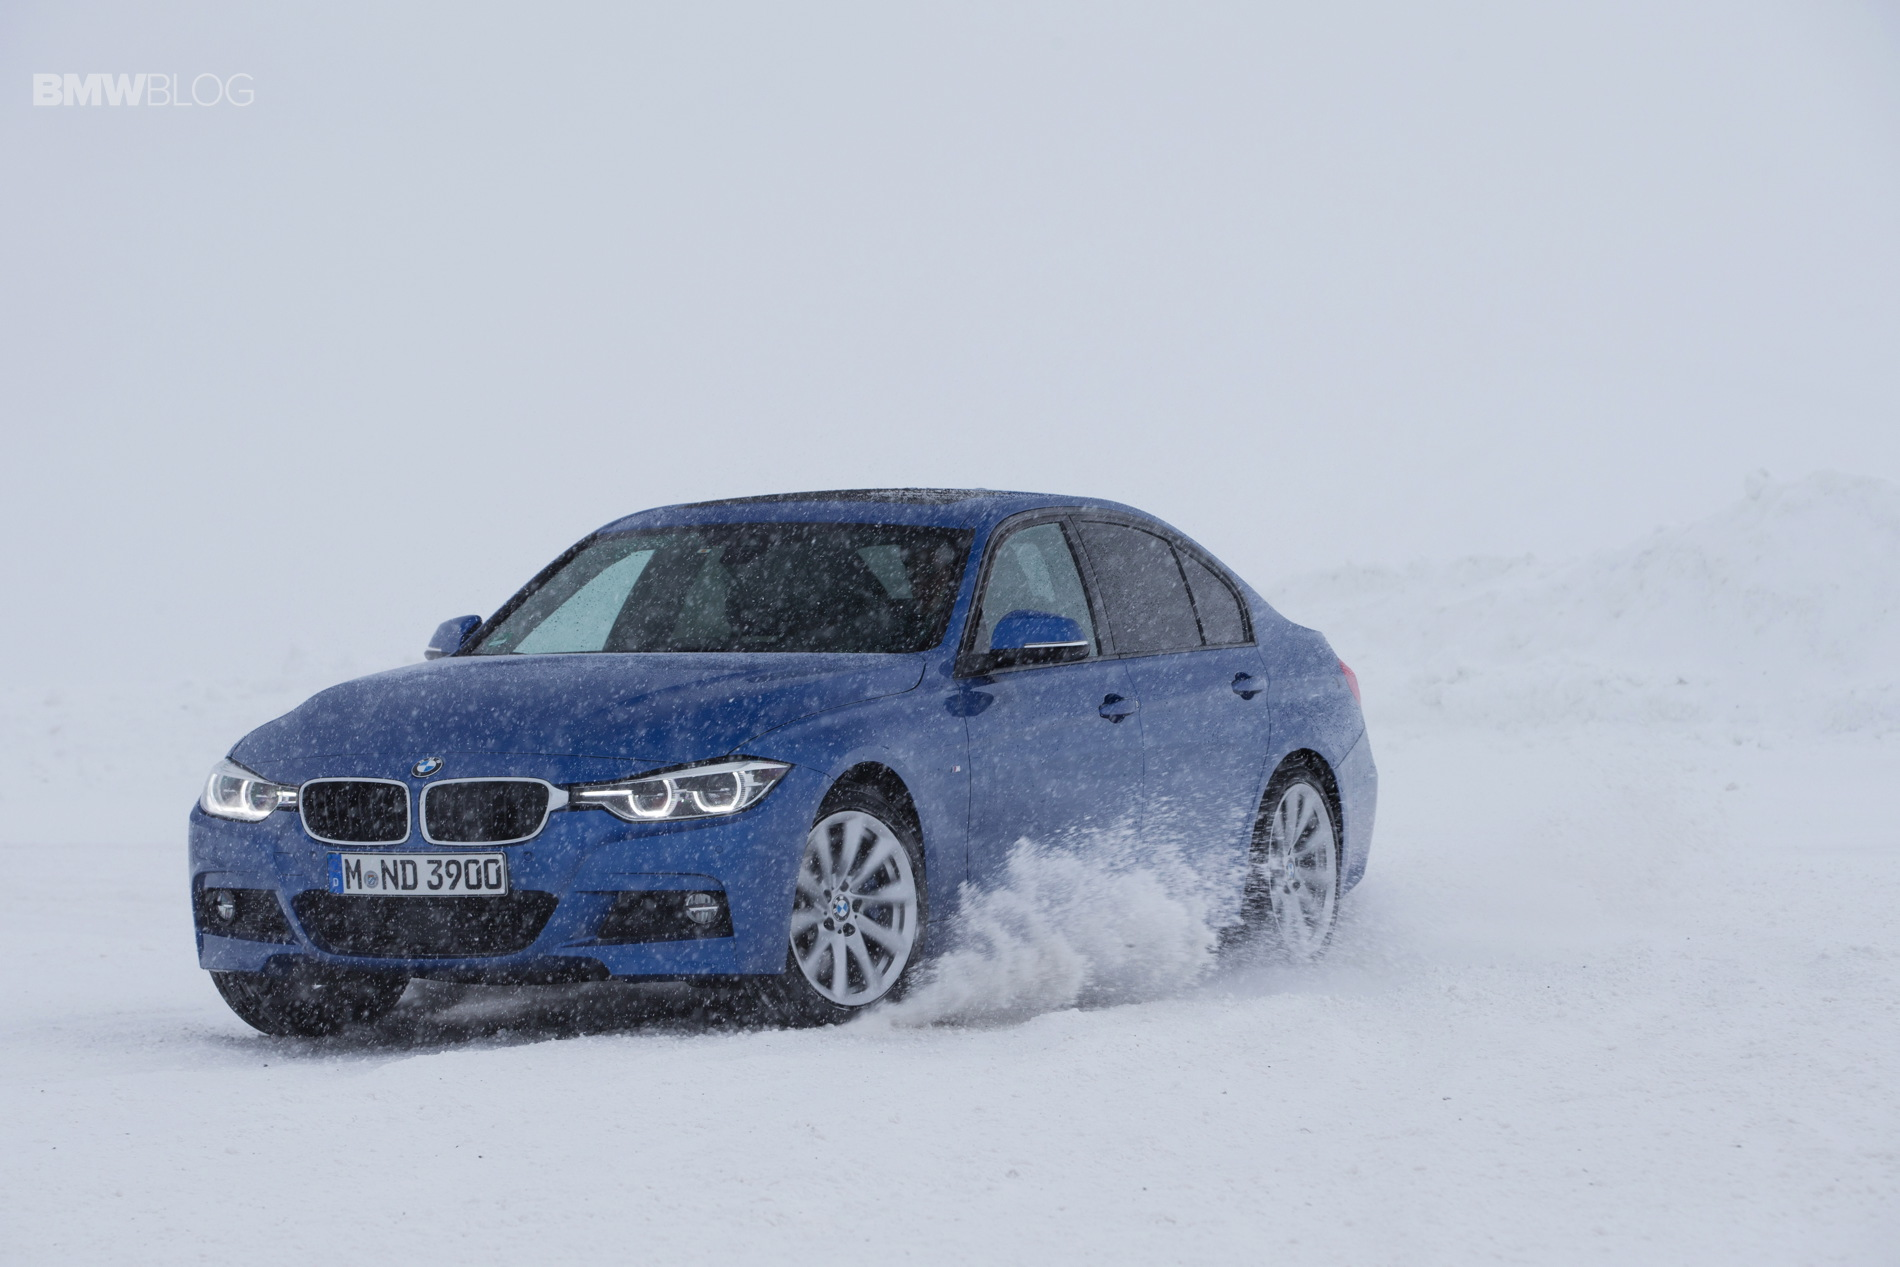 Bmw 335d Xdrive Lci With M Sport Package Playing In Snow